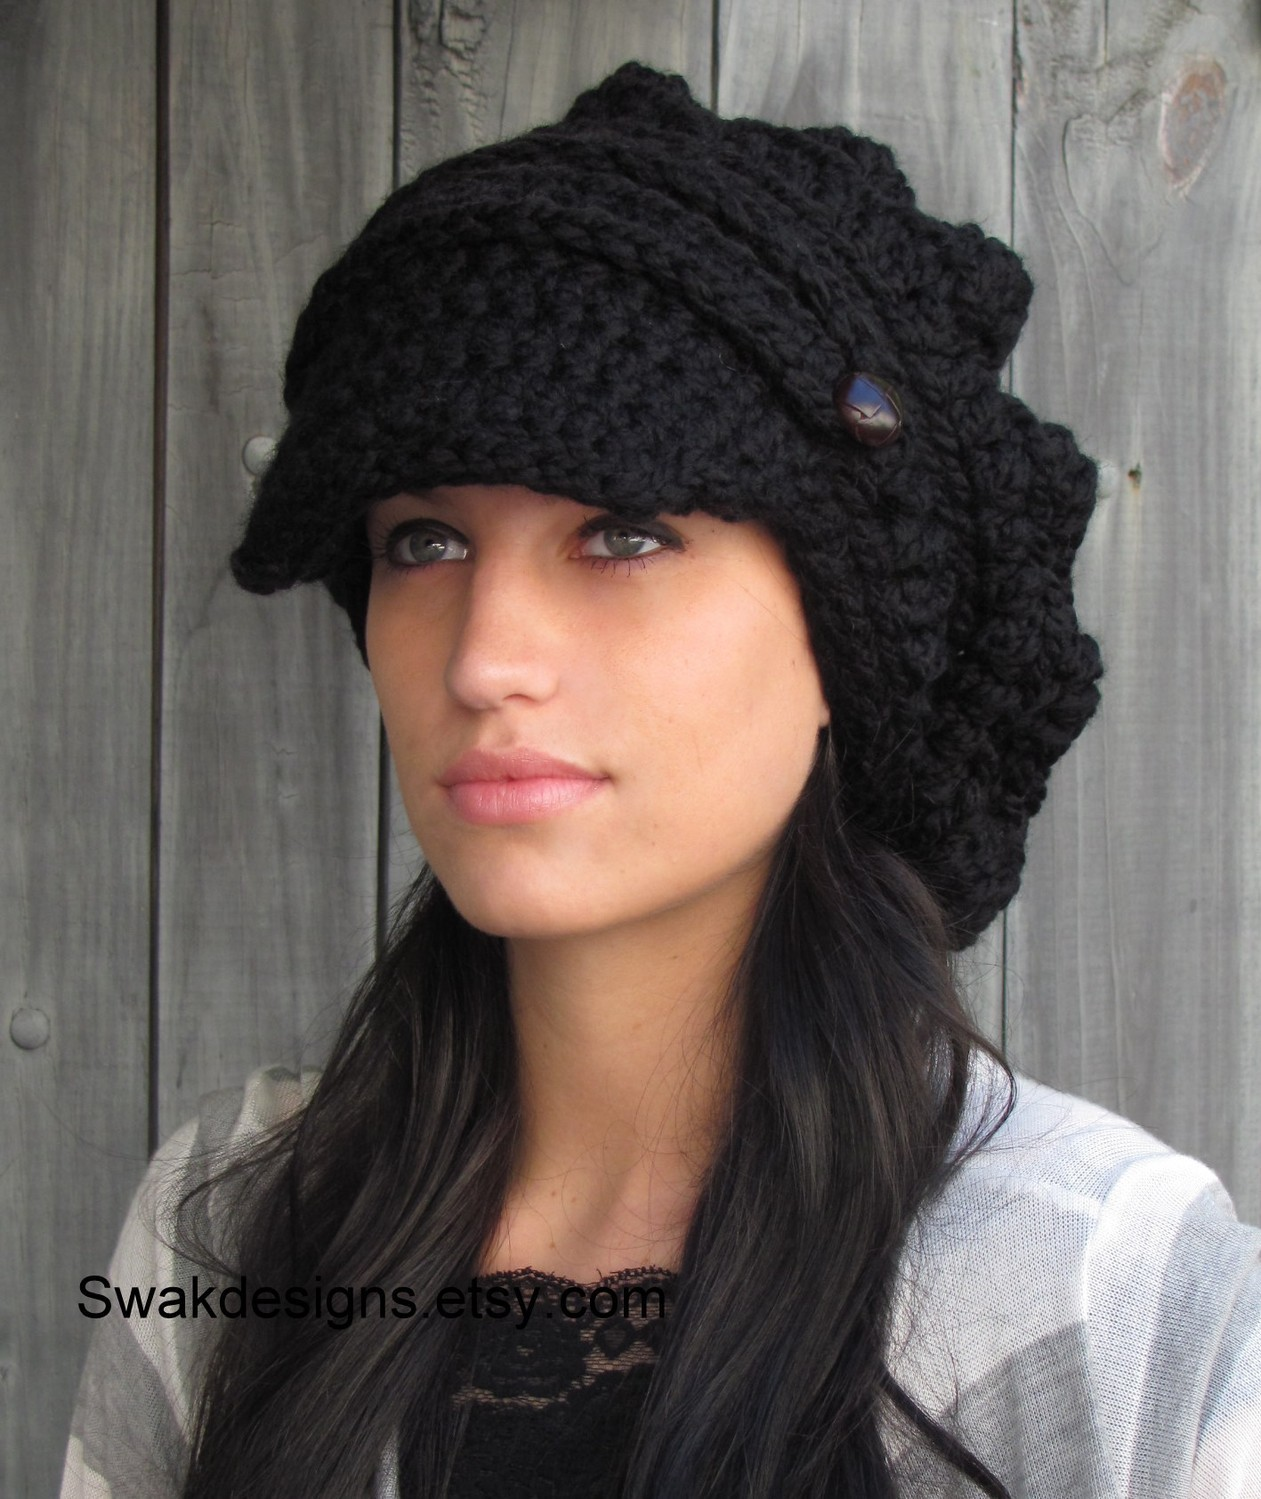 55a16e953d0 Black Slouchy Hat Womens Hat Two Button Band Newsboy Cap Handmade ...